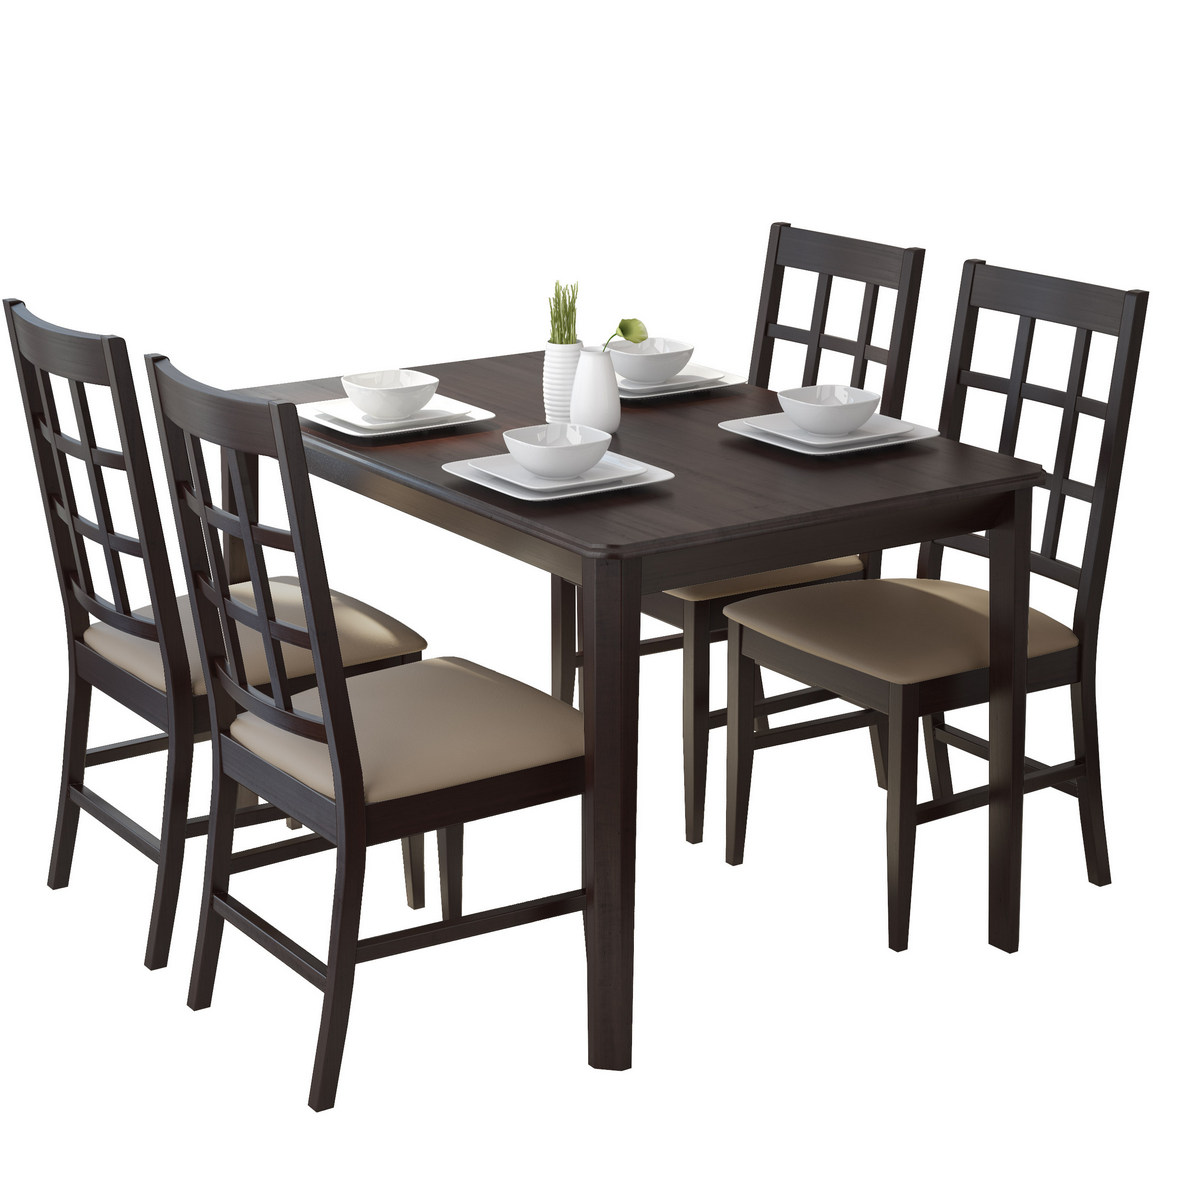 Corliving Drg Atwood Dining Set Taupe Stone Leatherette Chairs